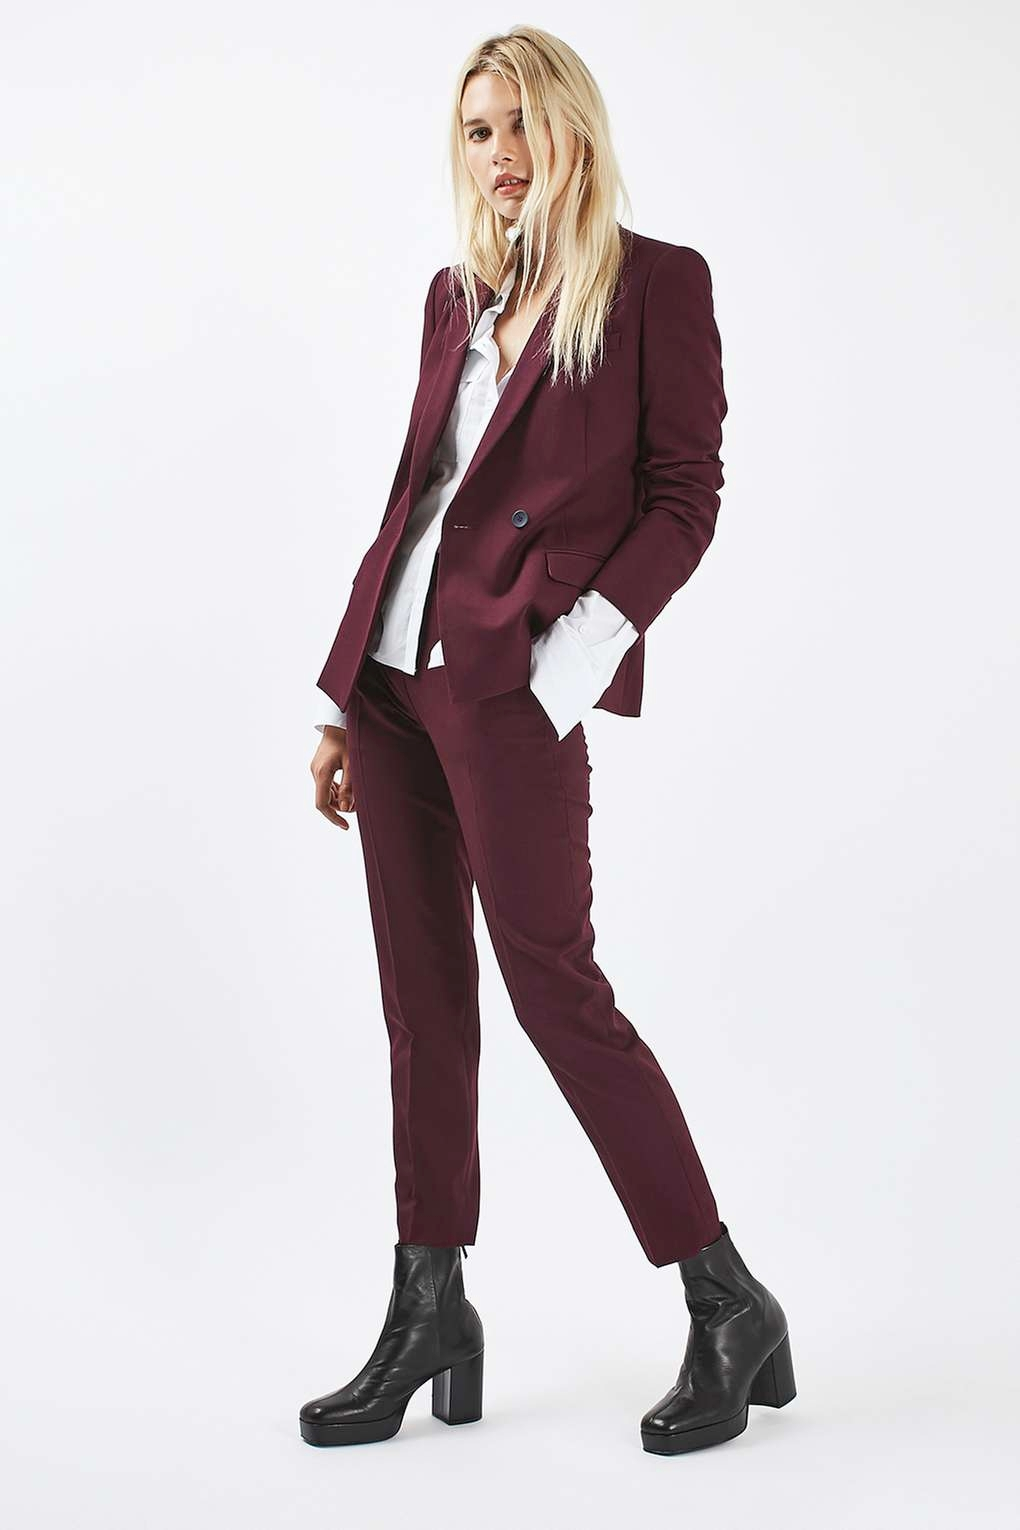 Topshop PETITE Tailored Suit Jacket and Trousers